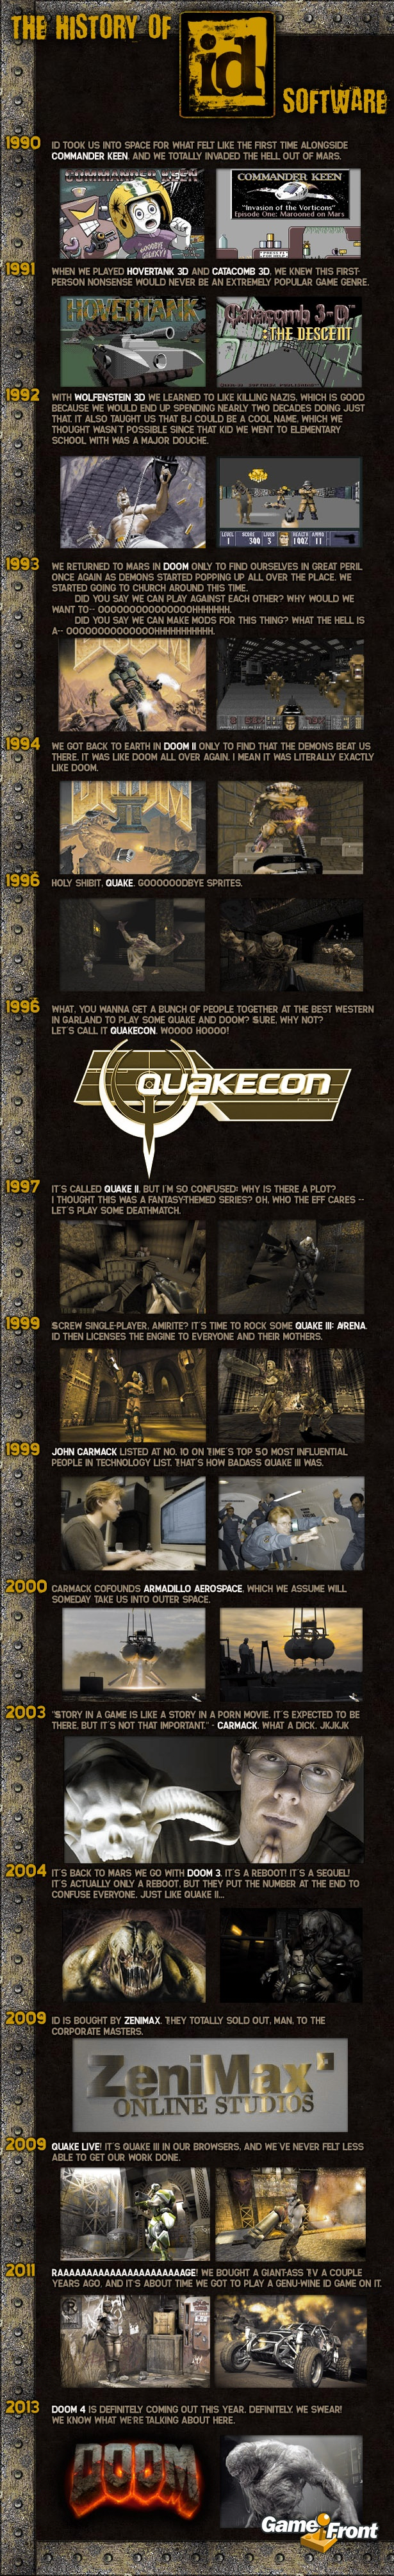 ID Software is often credited with creating the FPS genre, and although that's not entirely true, ID did popularize the genre and forge the basic ar